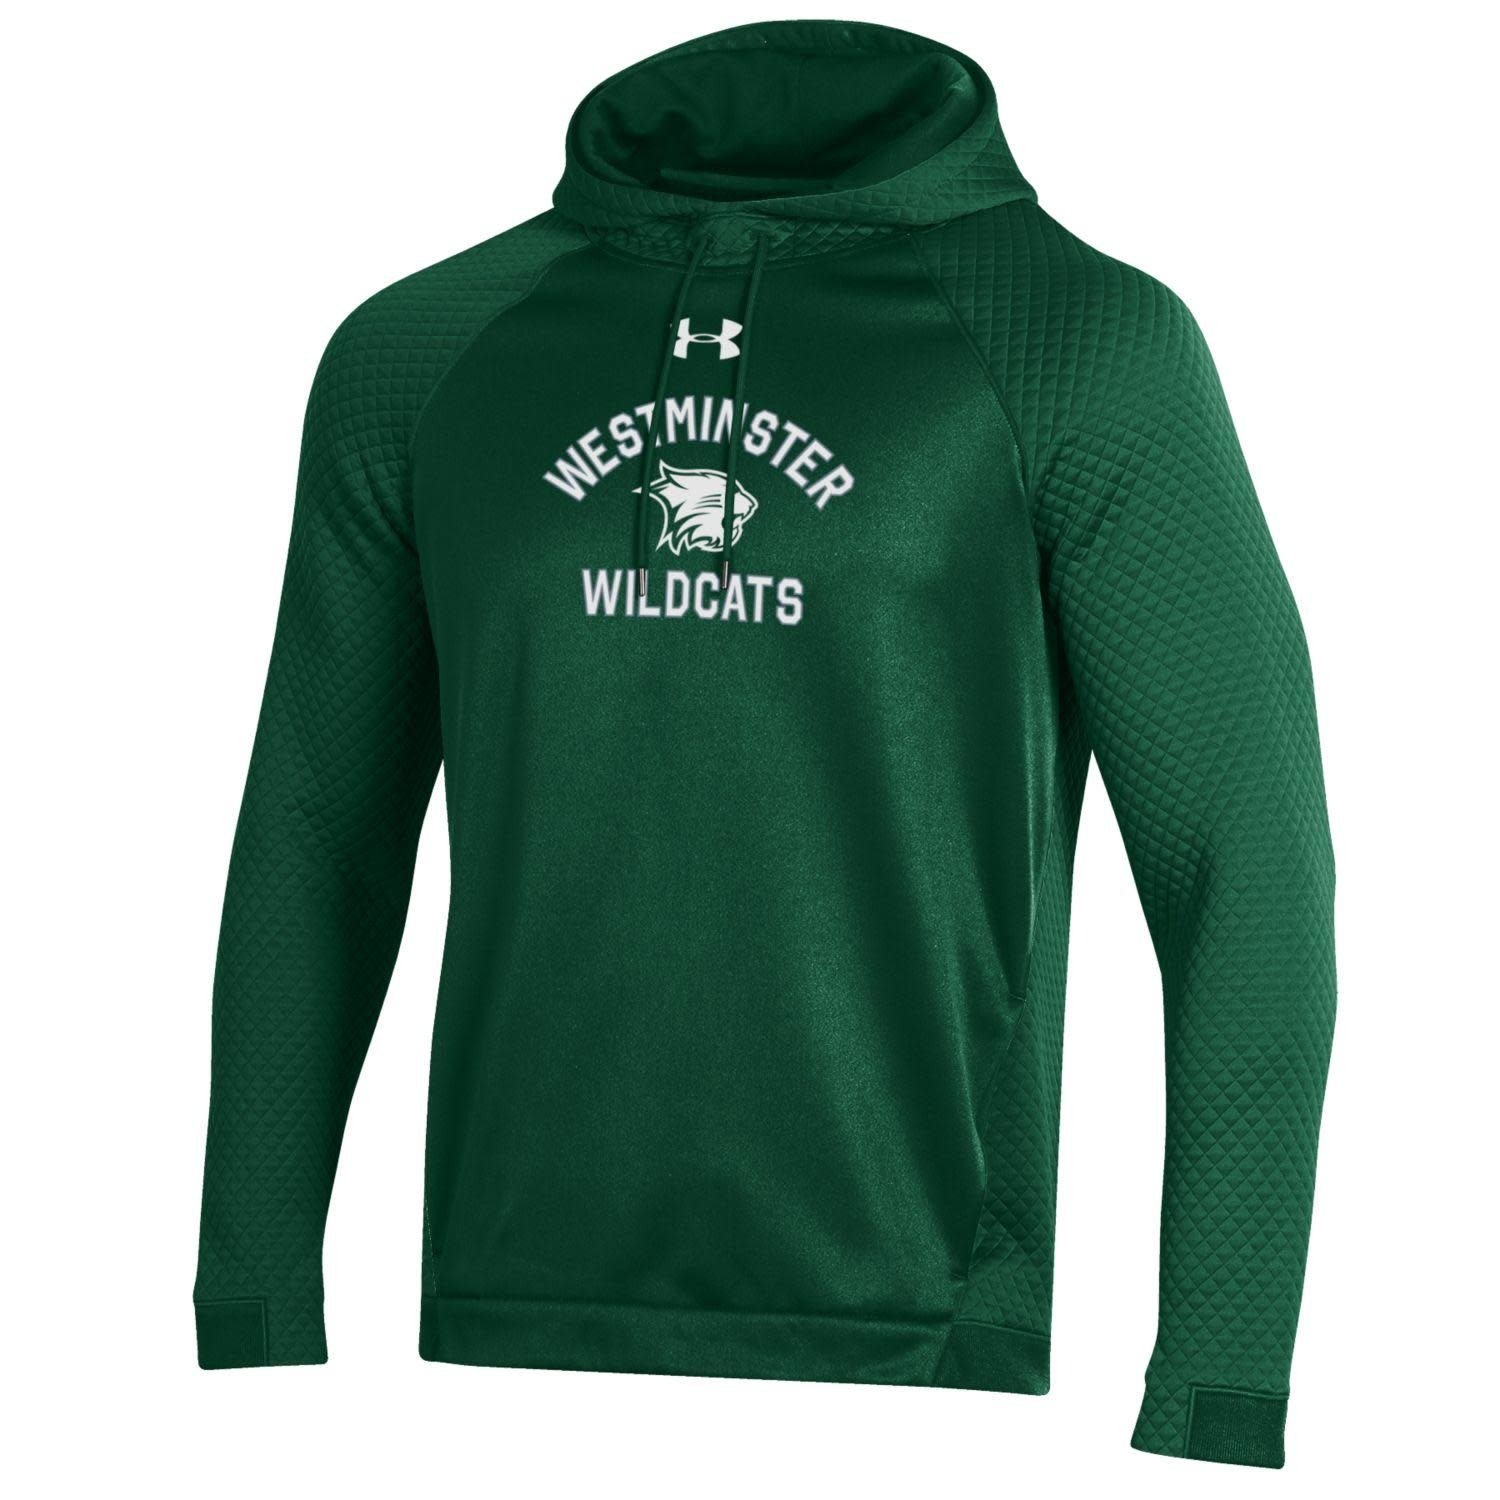 Sweatshirt: UA Dri-fit Hoody/Quilted - Forest Green